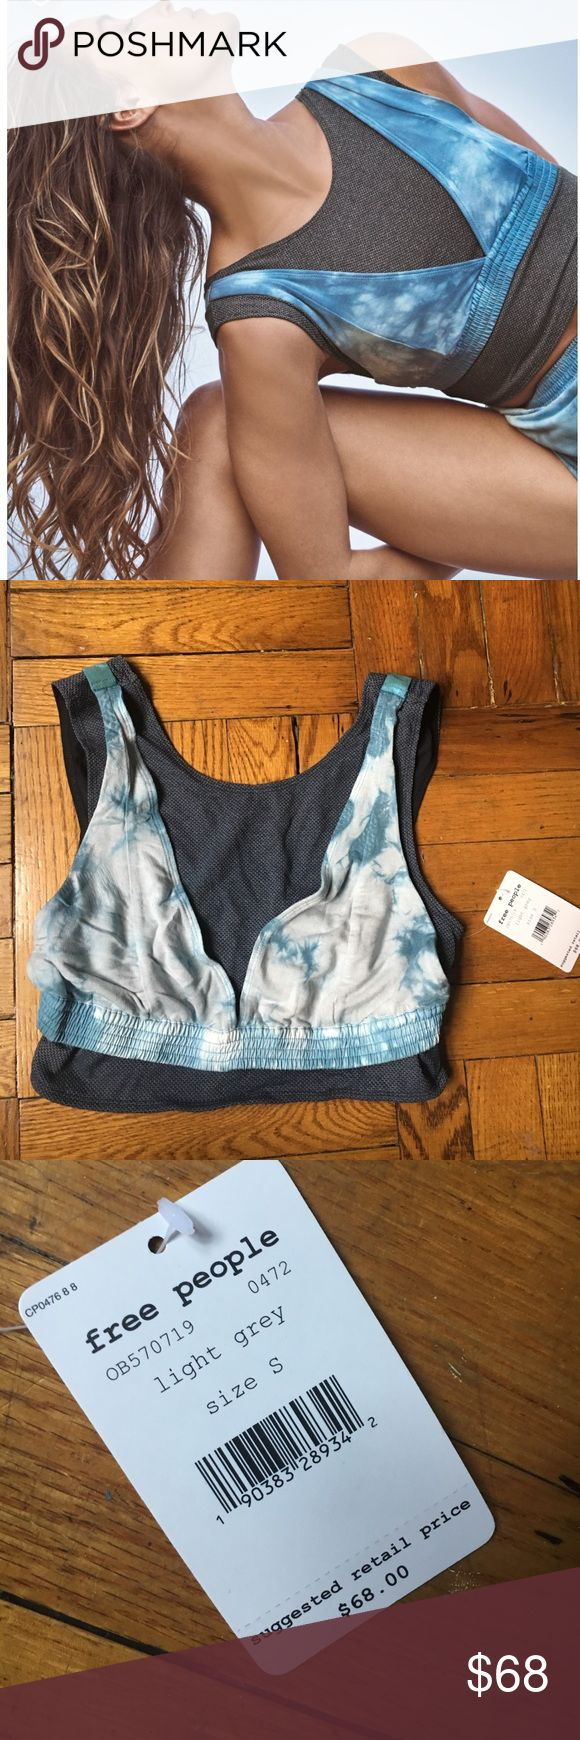 NWT Free People oasis sports bra Free People Oasis sports bra, dark and light blue and white, tie dye print, size small, never worn BRAND NEW WITH TAGS, *please note actual bra has more white to it than the one model is wearing Free People Intimates & Sleepwear Bras